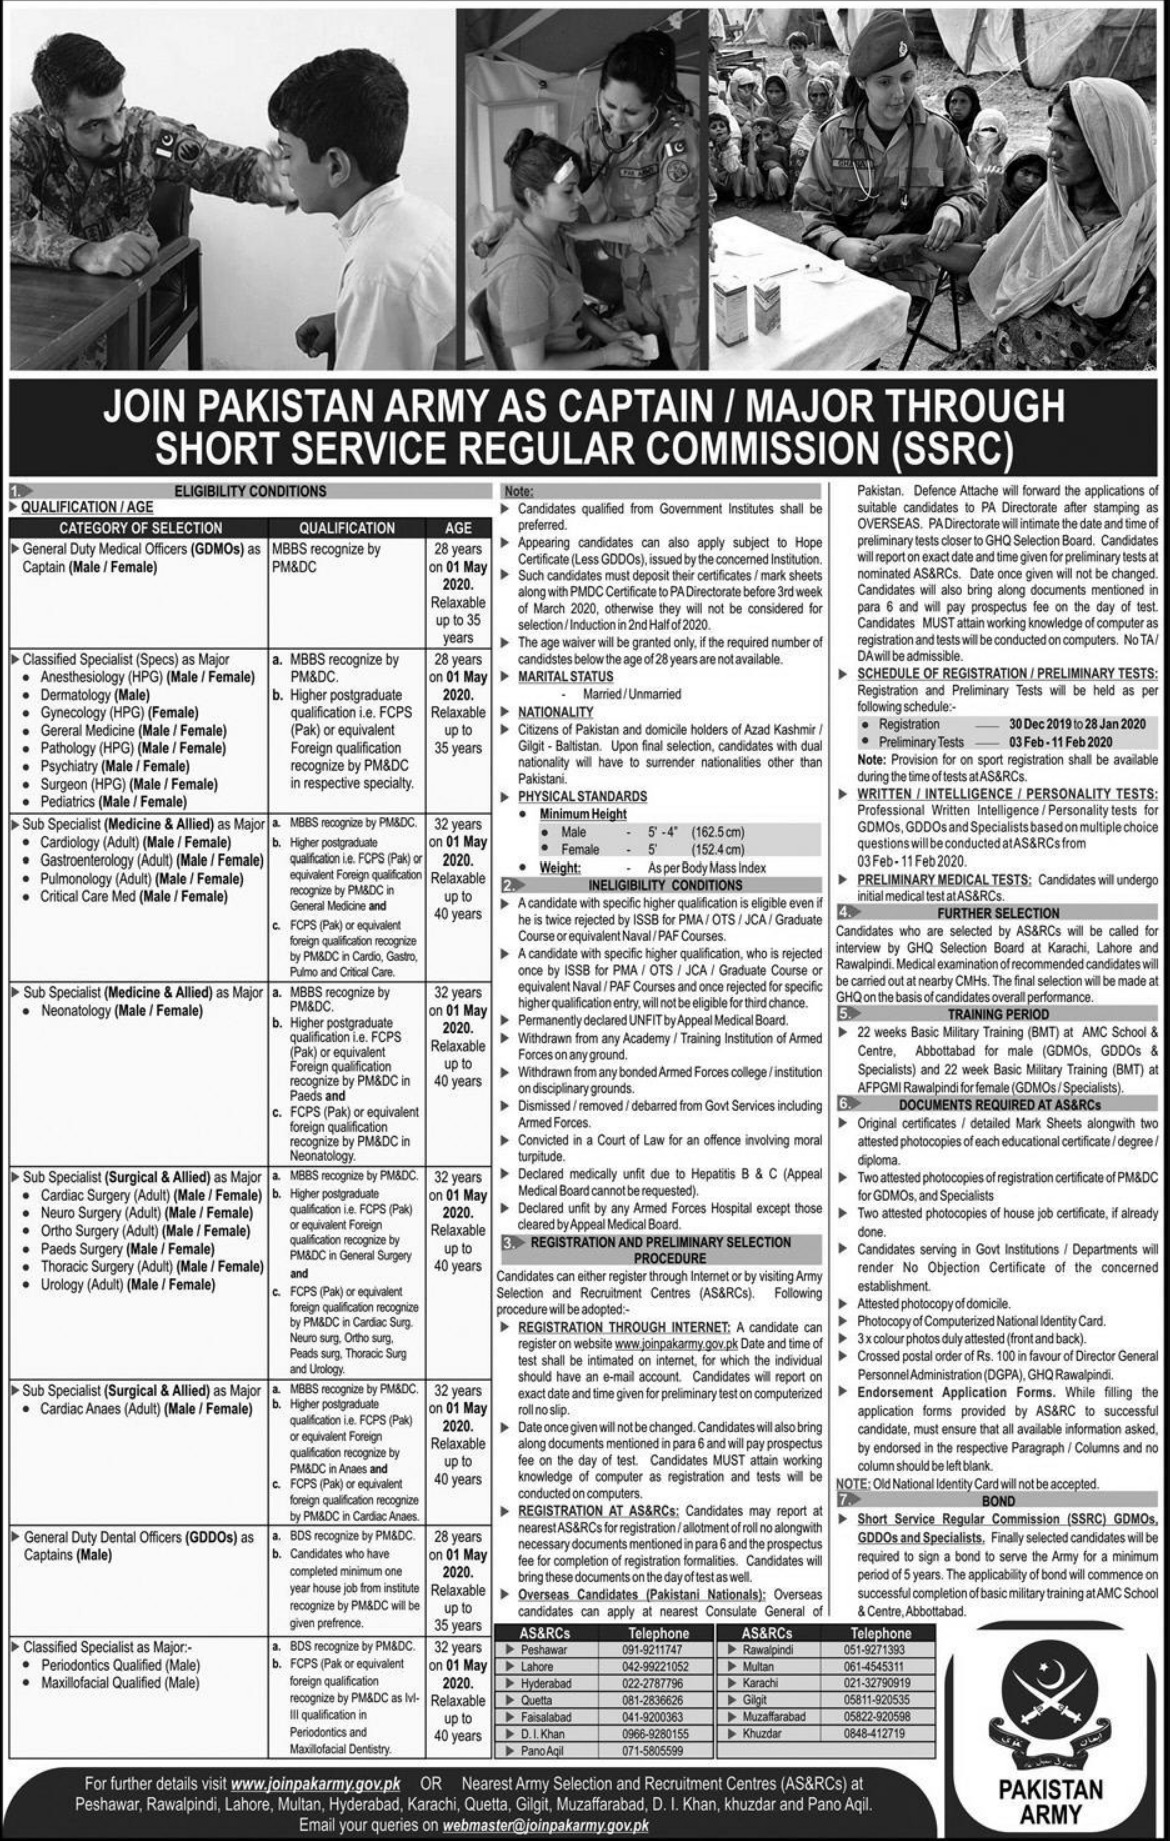 Join Pakistan Army as Captain & Major through SSRC 2020